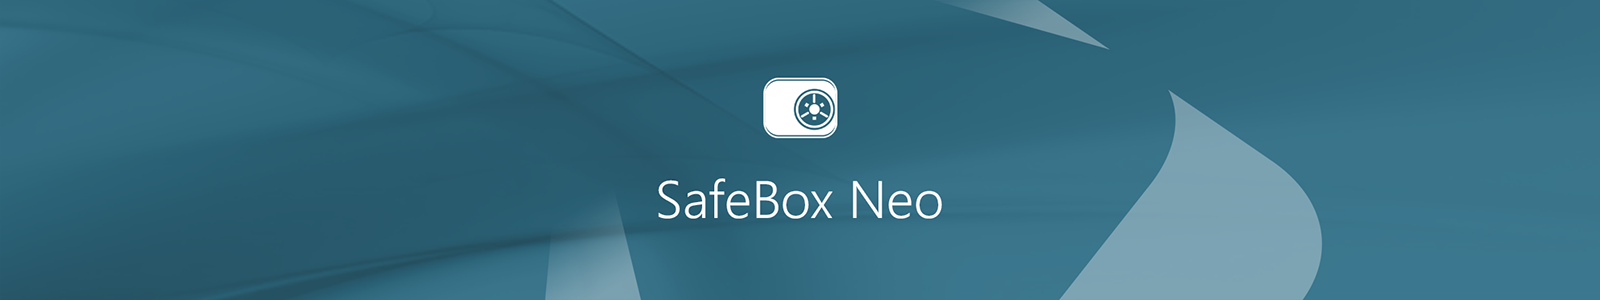 SafeBox Neo banner